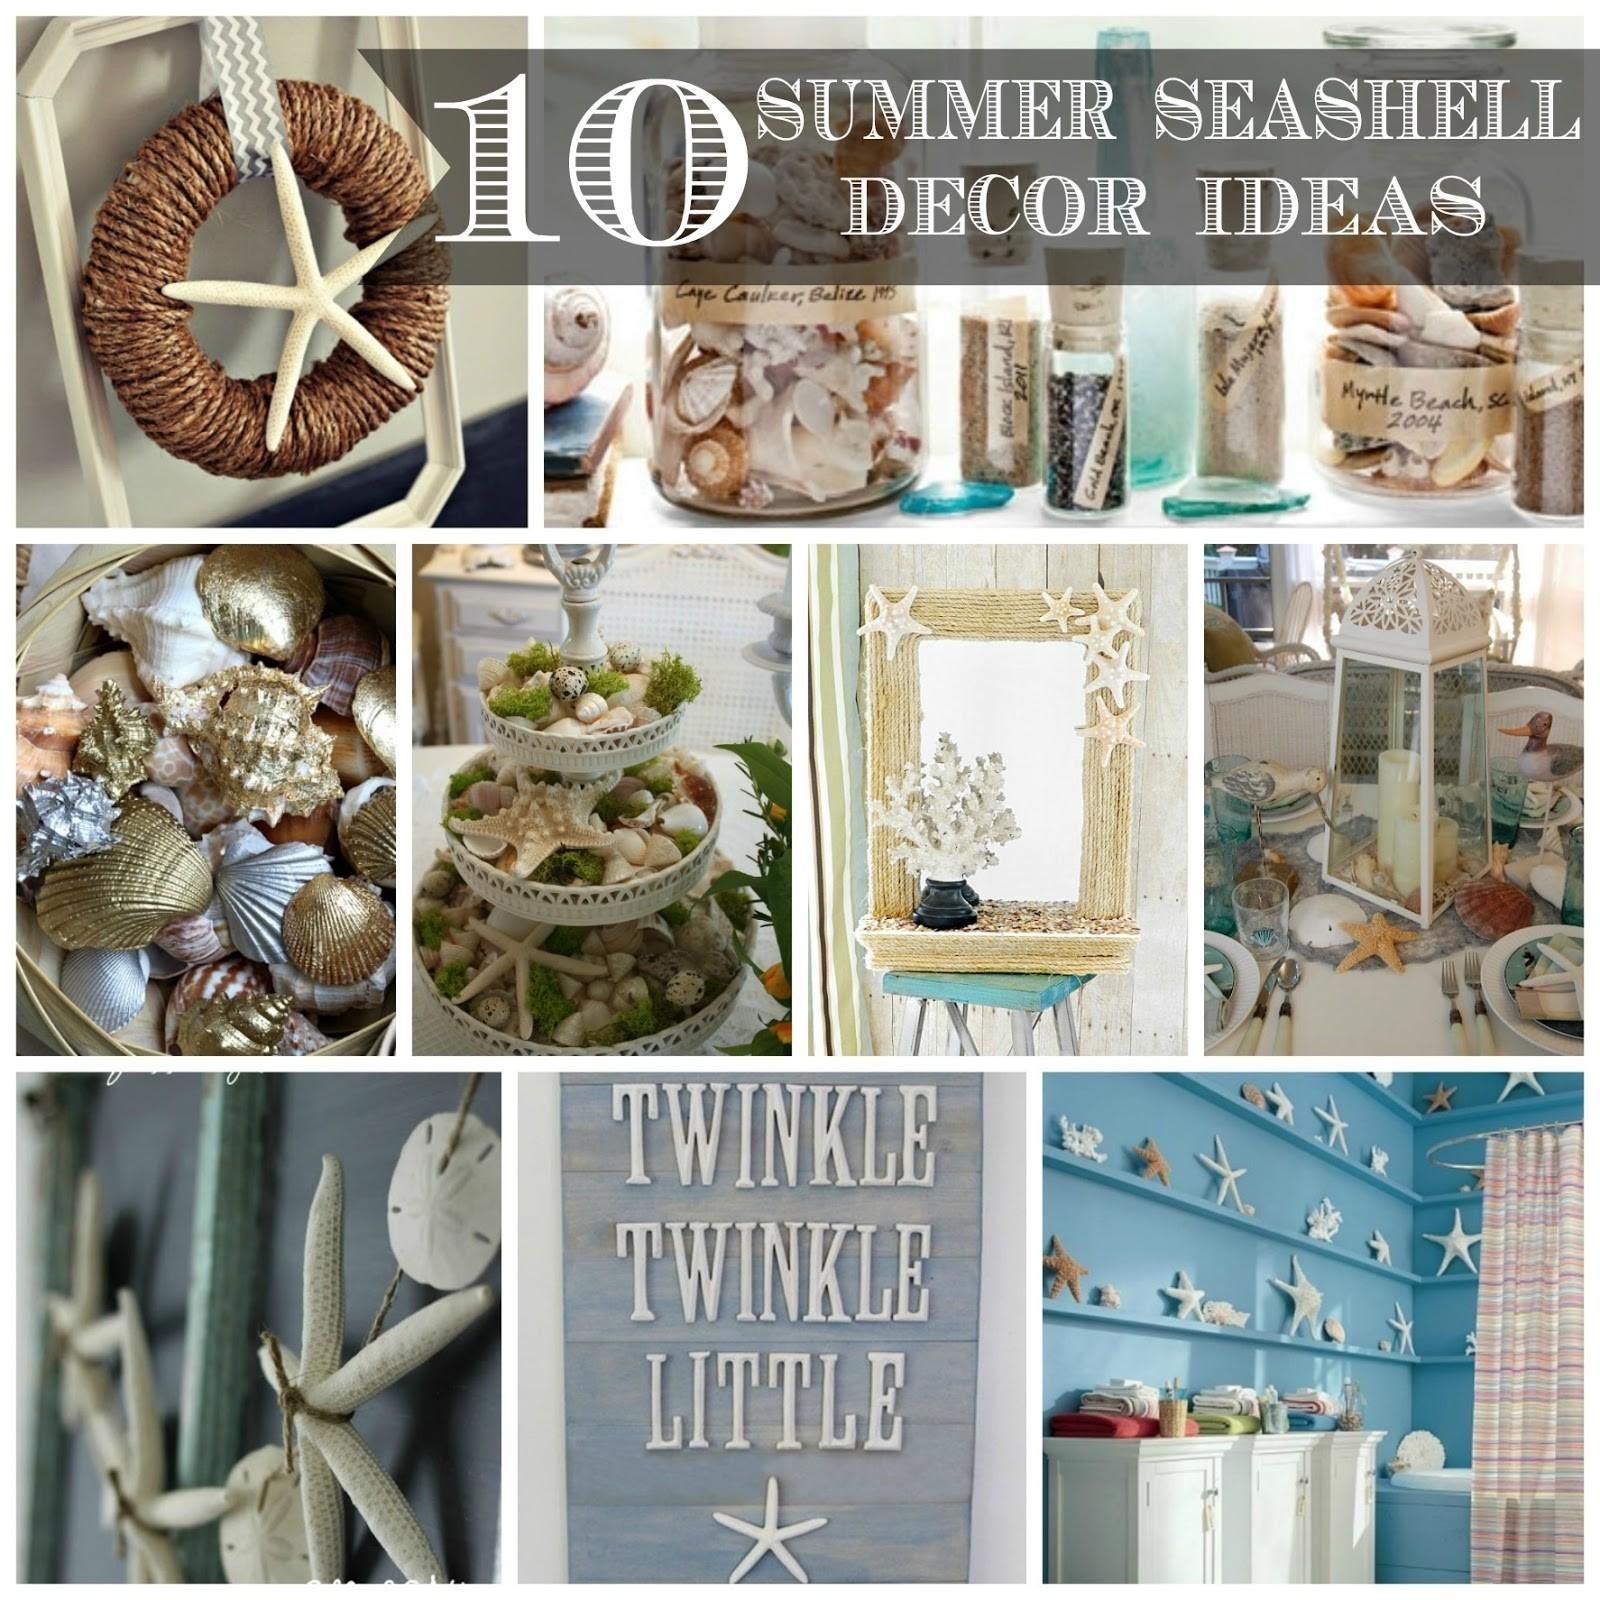 Summer Seashell Decor Ideas